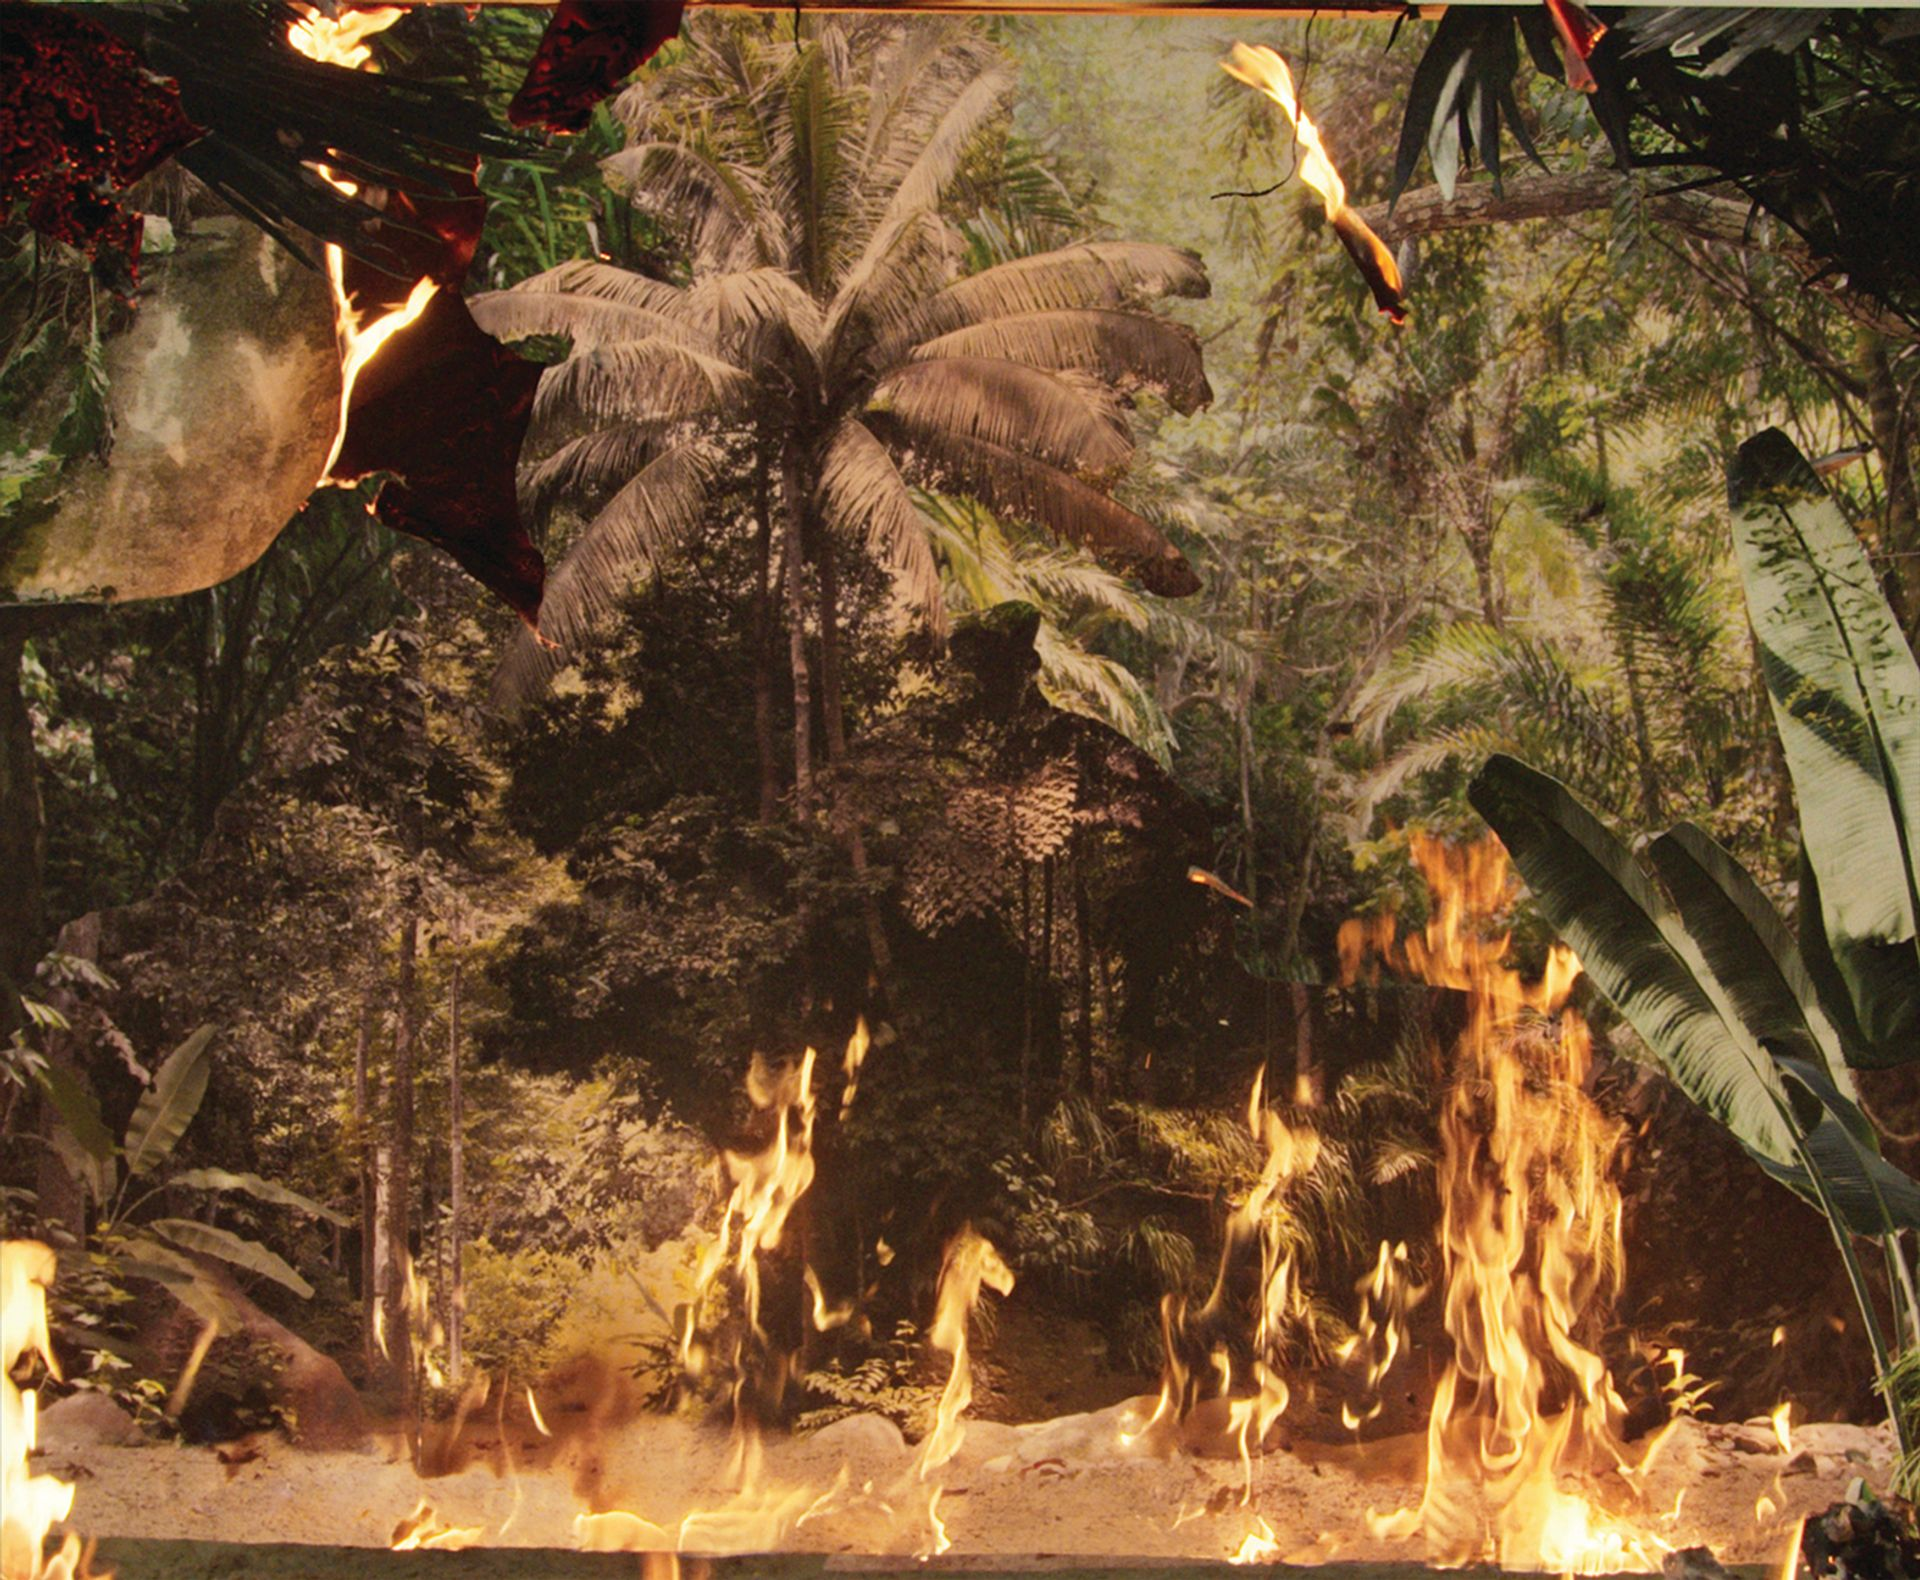 Noémie Goudal's film Below the Deep South (2021), depicting a tropical forest consumed by flames, is on show at the fair with London's Edel Assanti gallery, one of more than 550 members of the Gallery Climate Coalition © Noémie Goudal; courtesy of Edel Assanti